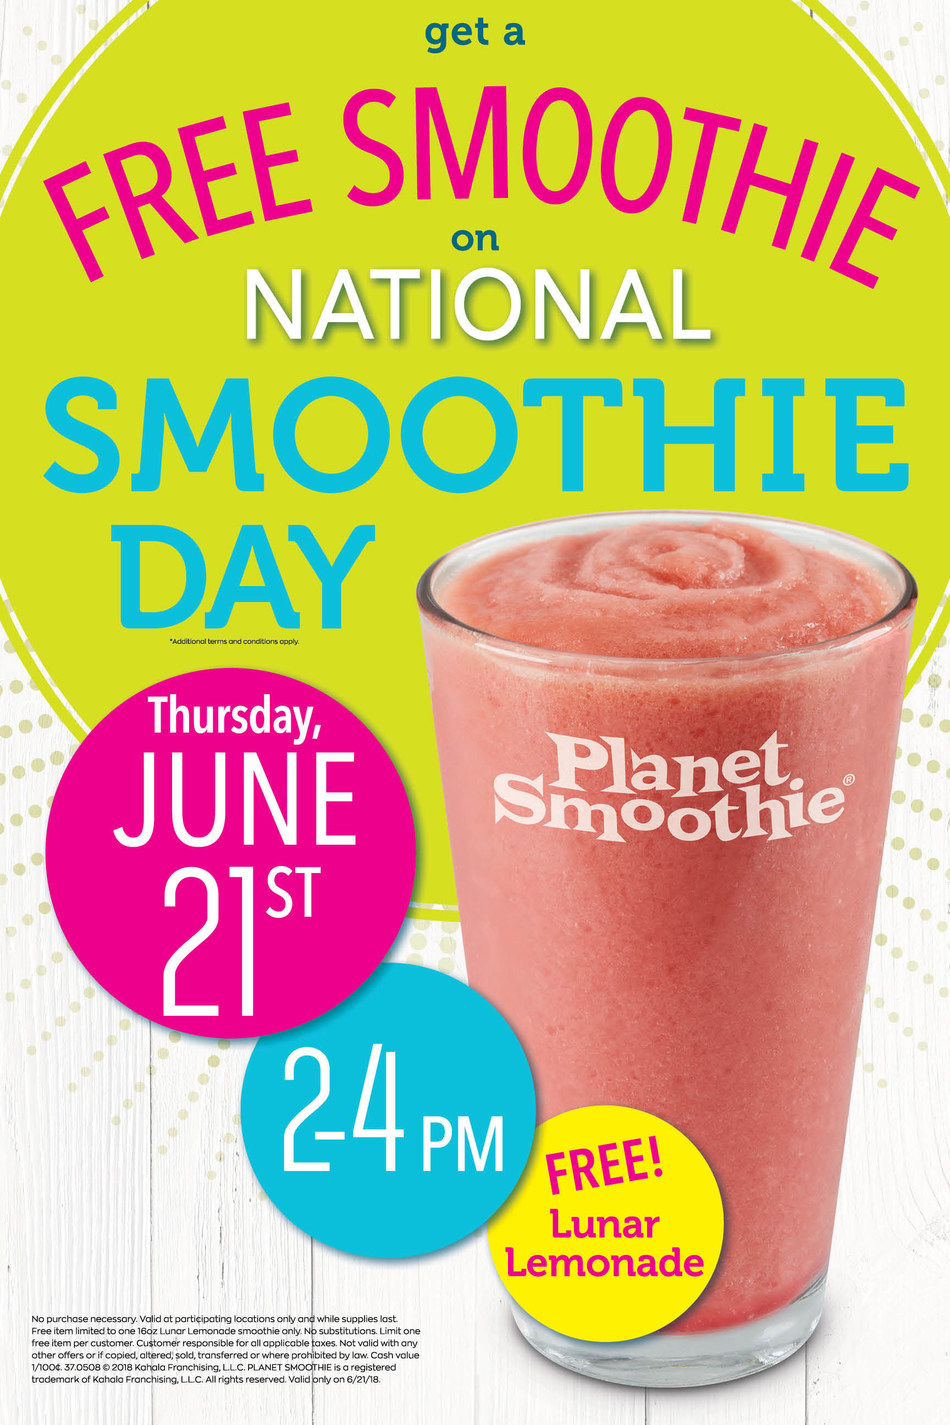 Planet Smoothie® will celebrate National Smoothie Day with free 16 oz. Lunar Lemonade smoothies from 2:00-4:00 pm local time.